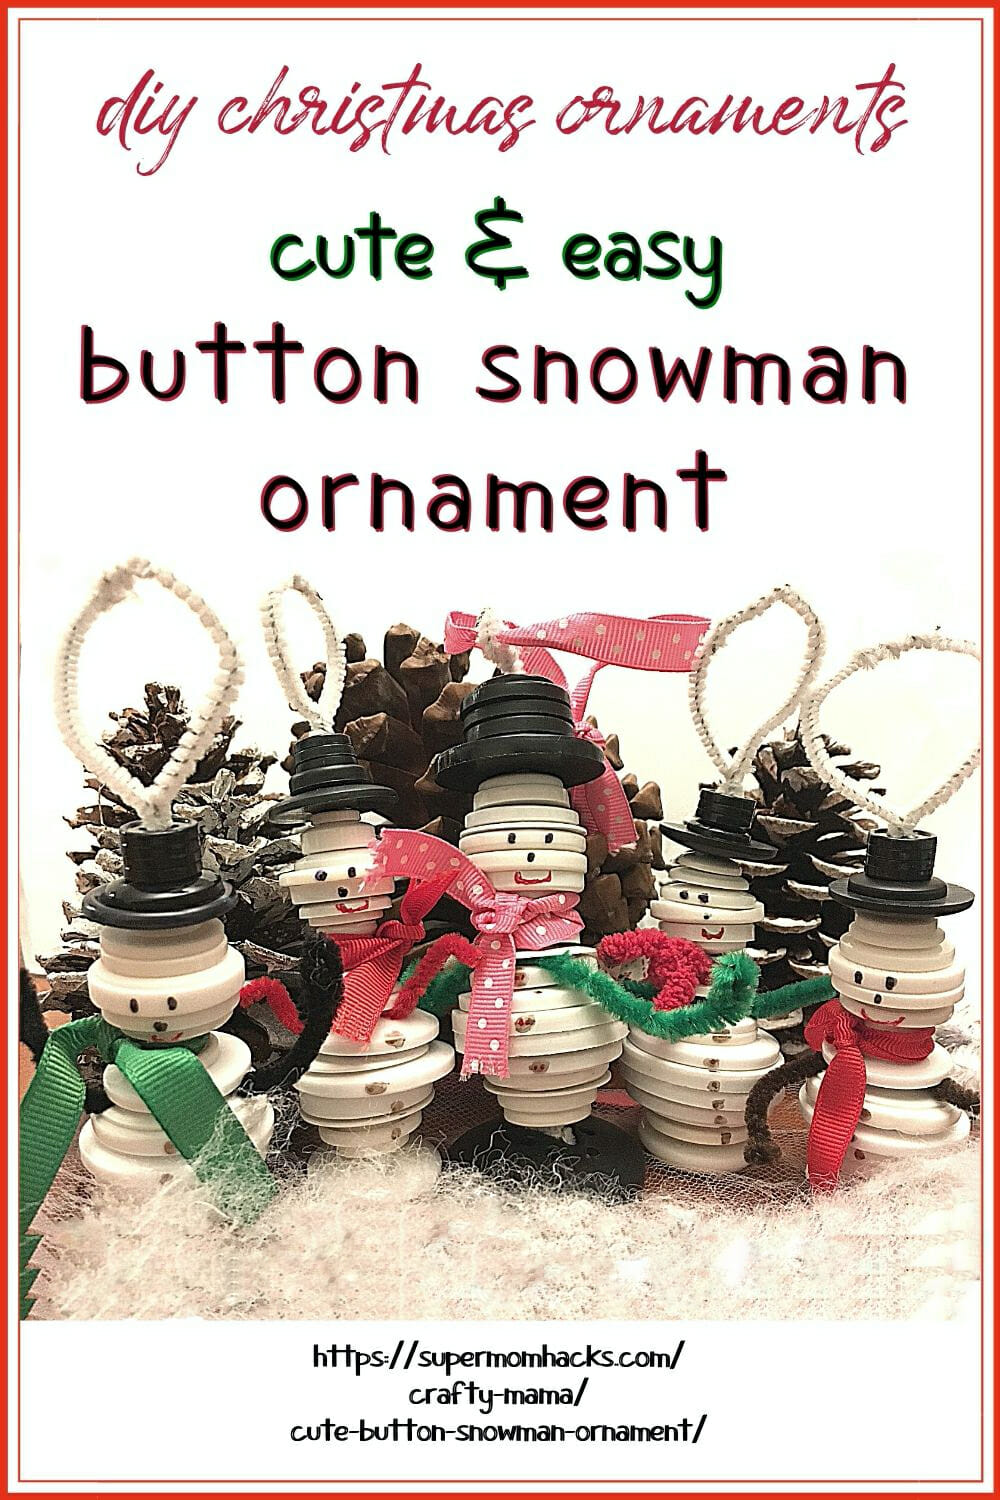 These cute button snowman ornaments make great DIY Christmas gifts while helping little hands practice sorting and fine motor skills.